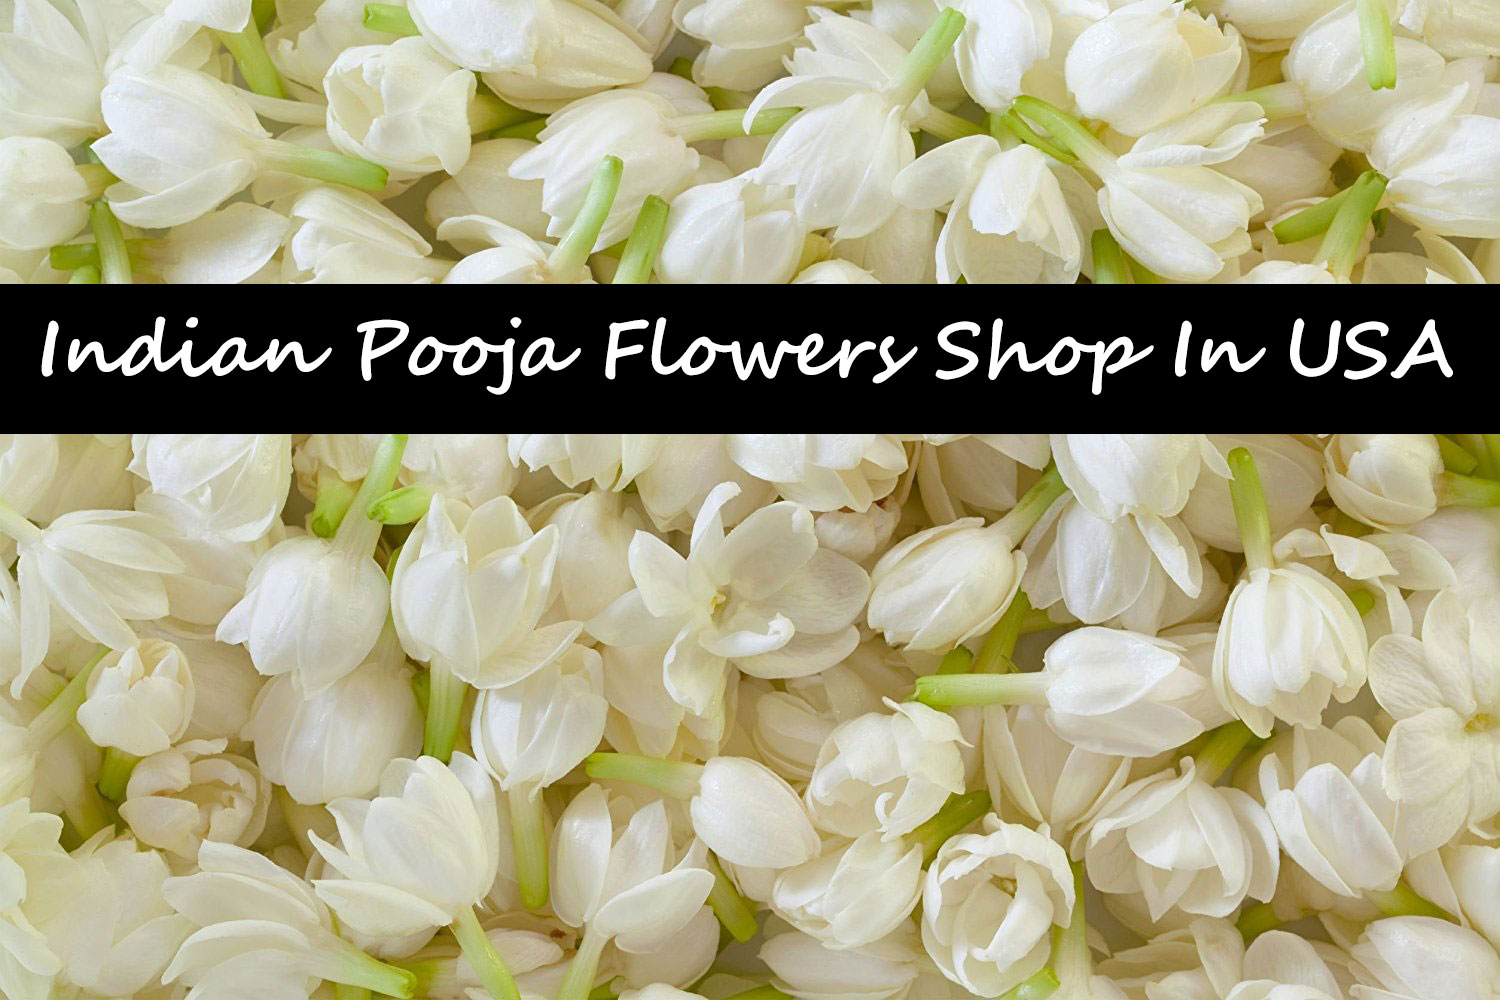 Shop in USA that Sell Flowers near me for Indian Pooja